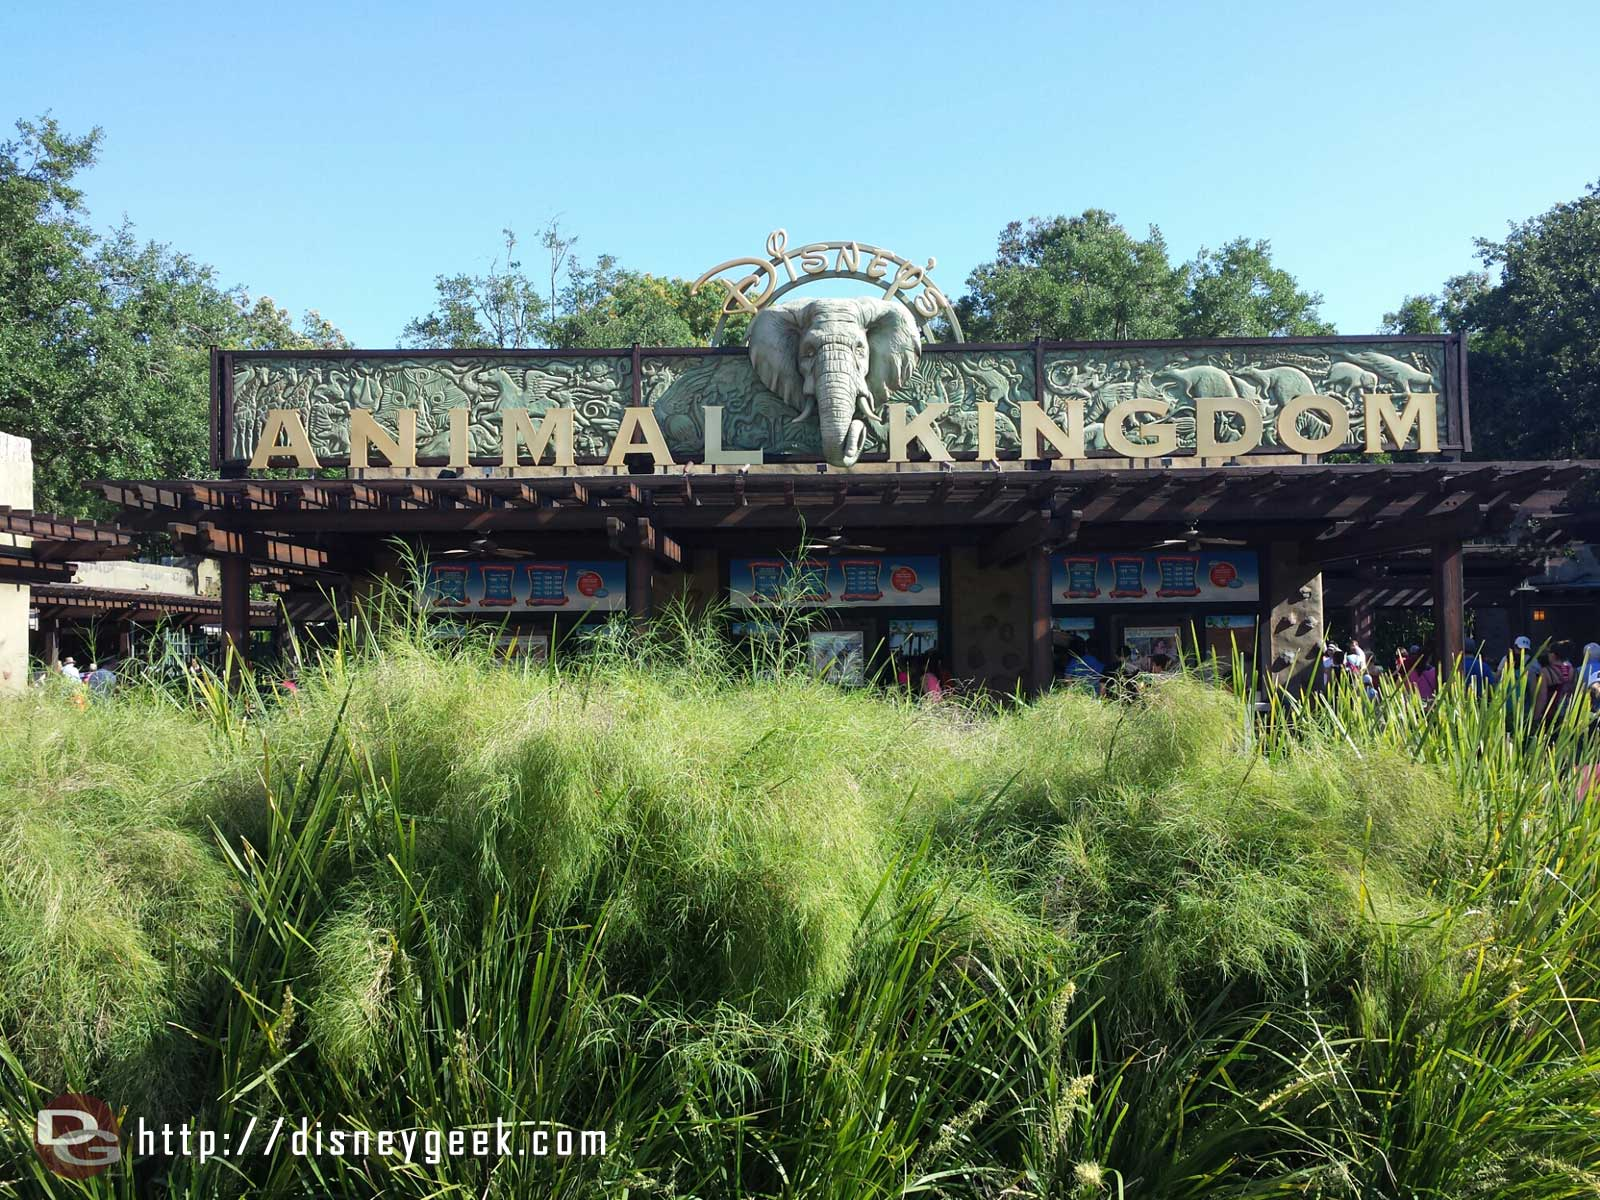 Arriving at Disney's Animal Kingdom